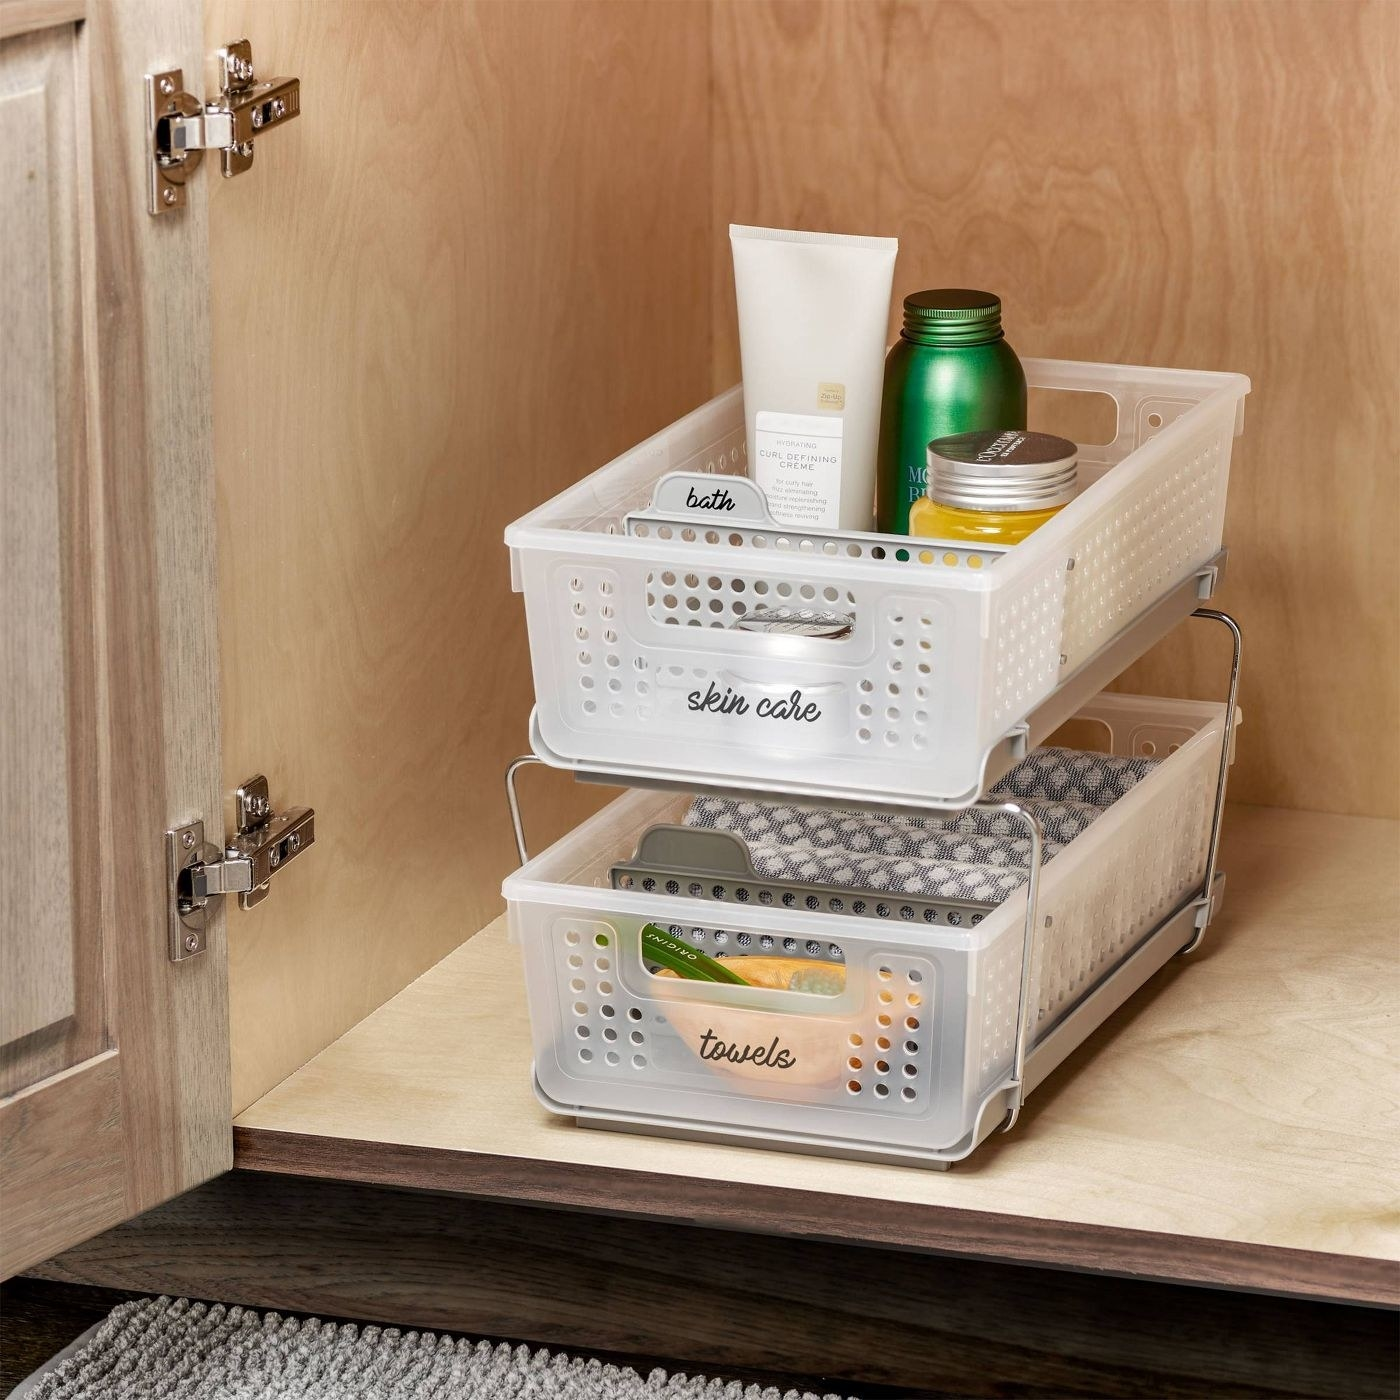 The Madesmart Two-Tier Organizer with Dividers in Frost/Gray storing toiletries in a bathroom cabinet